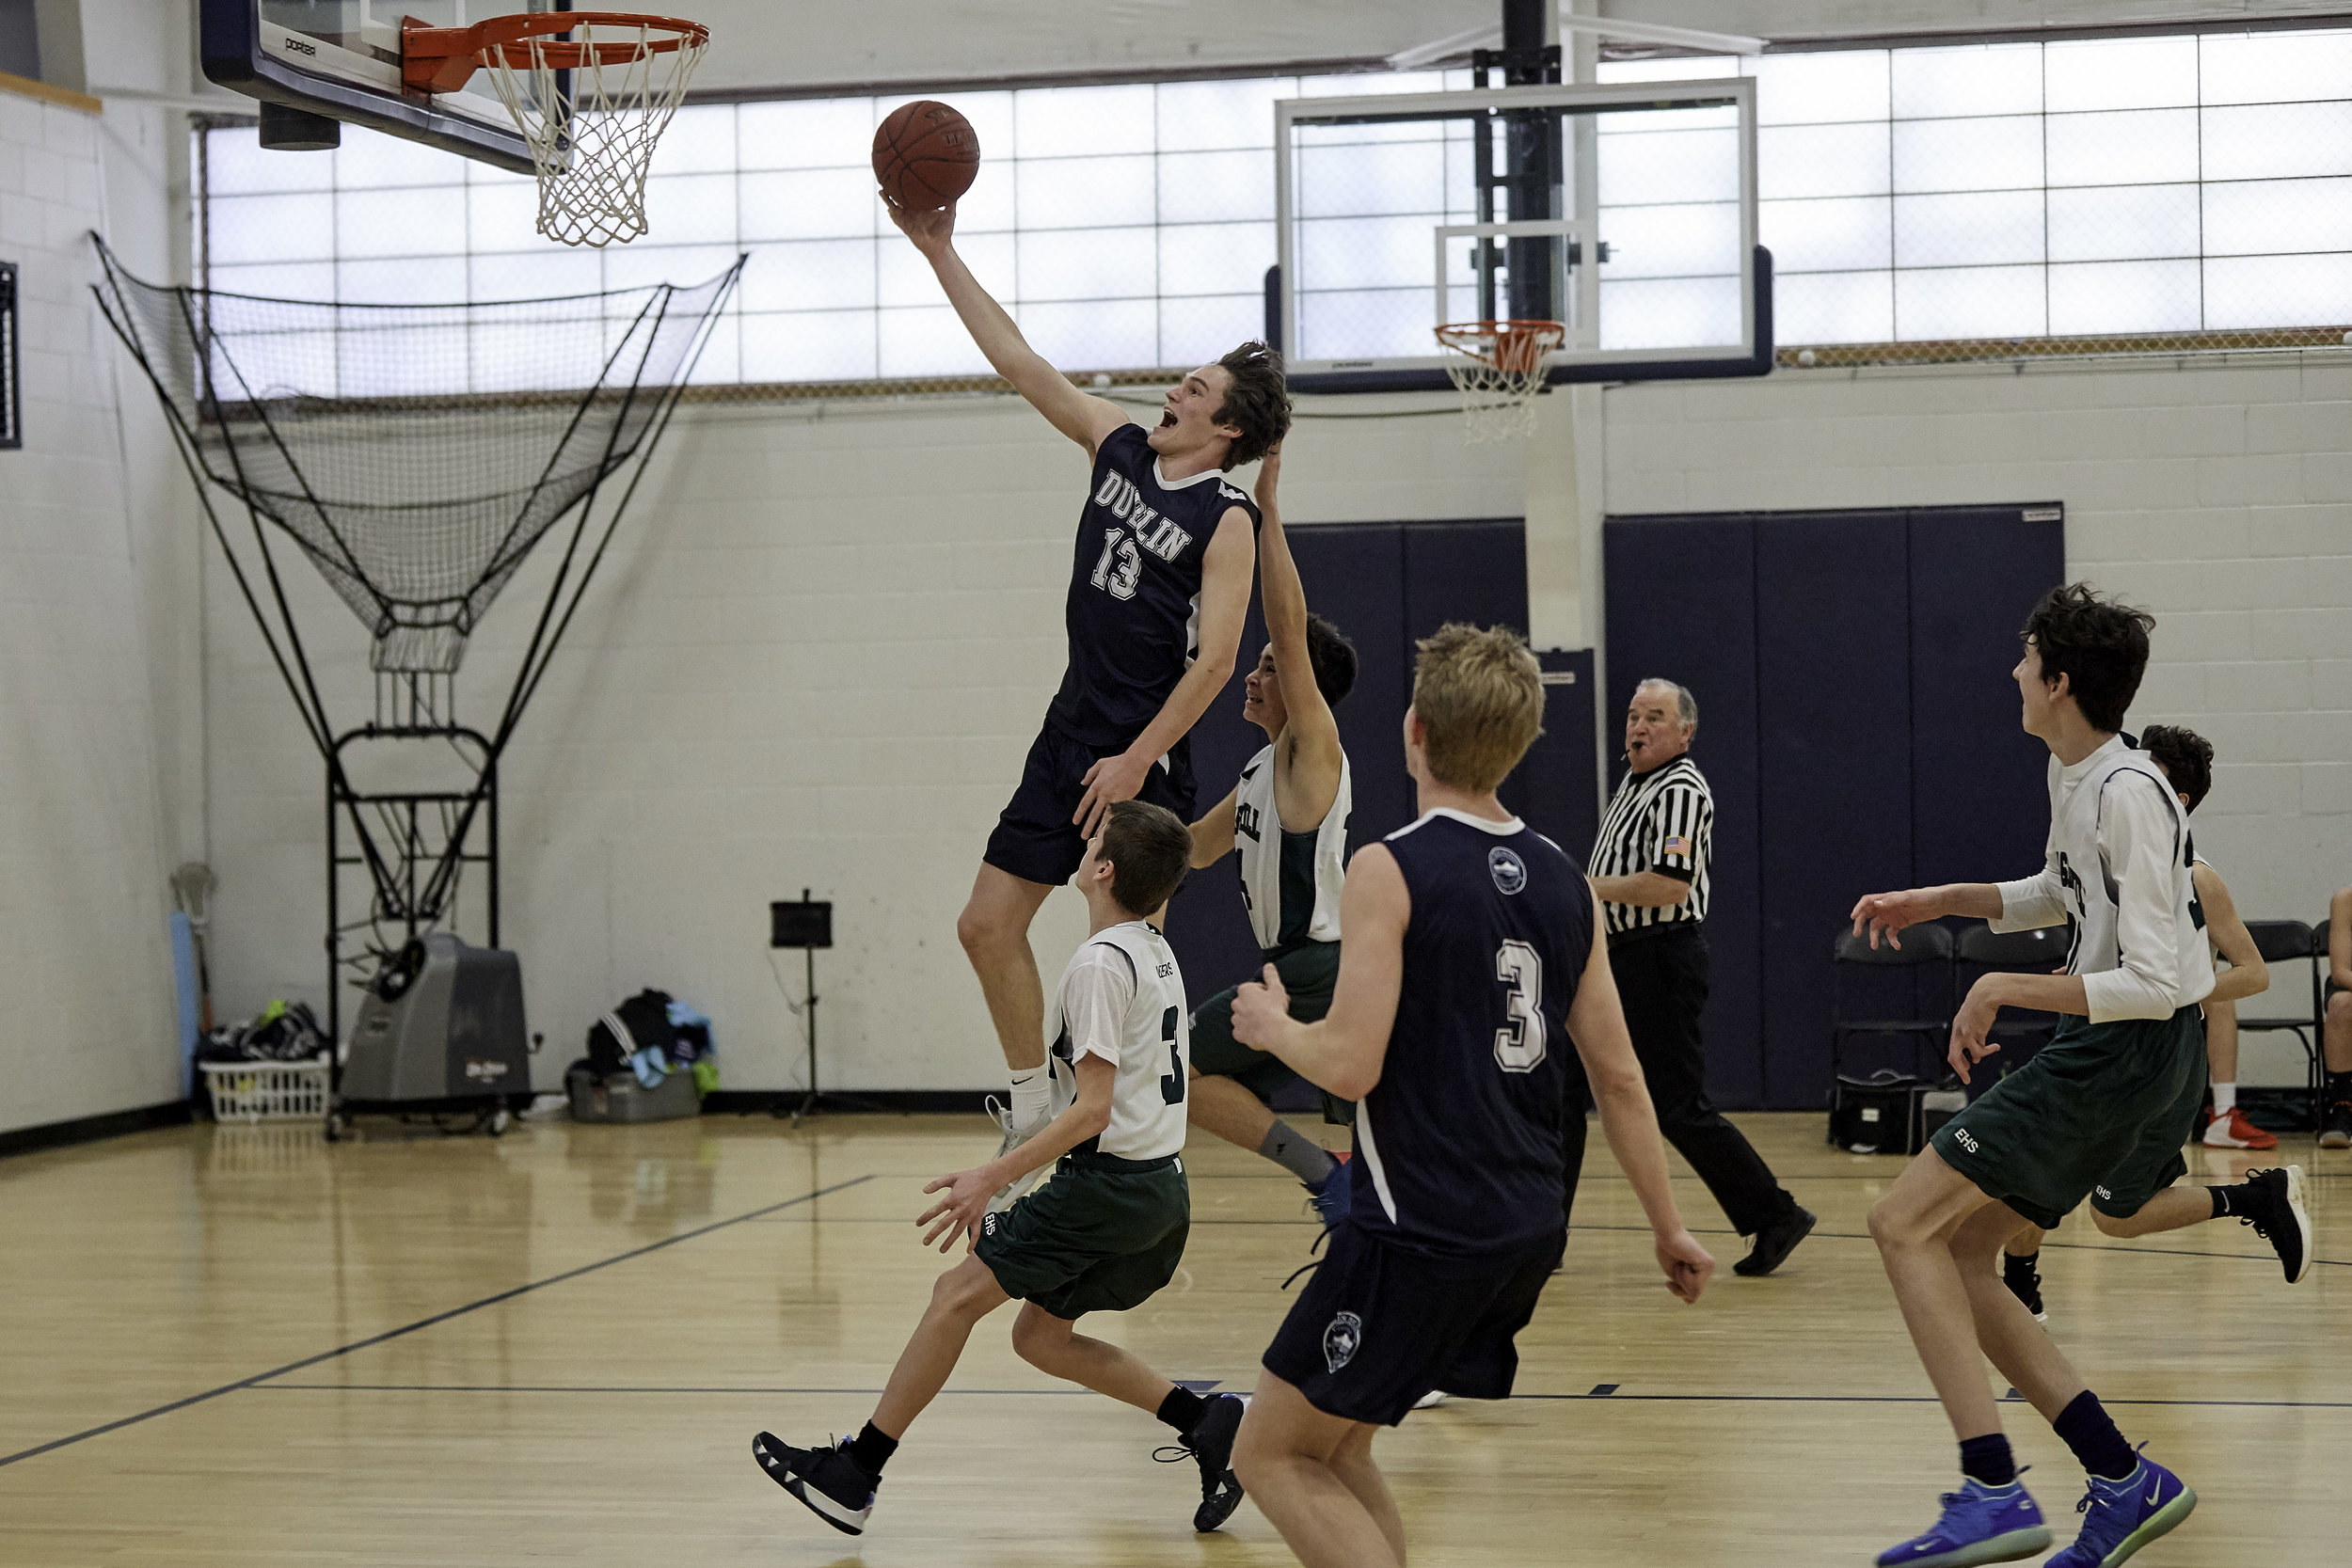 Boys Varsity Basketball vs. Eagle Hill School JV at RVAL Tournament - February 11, 2019 - 167782.jpg